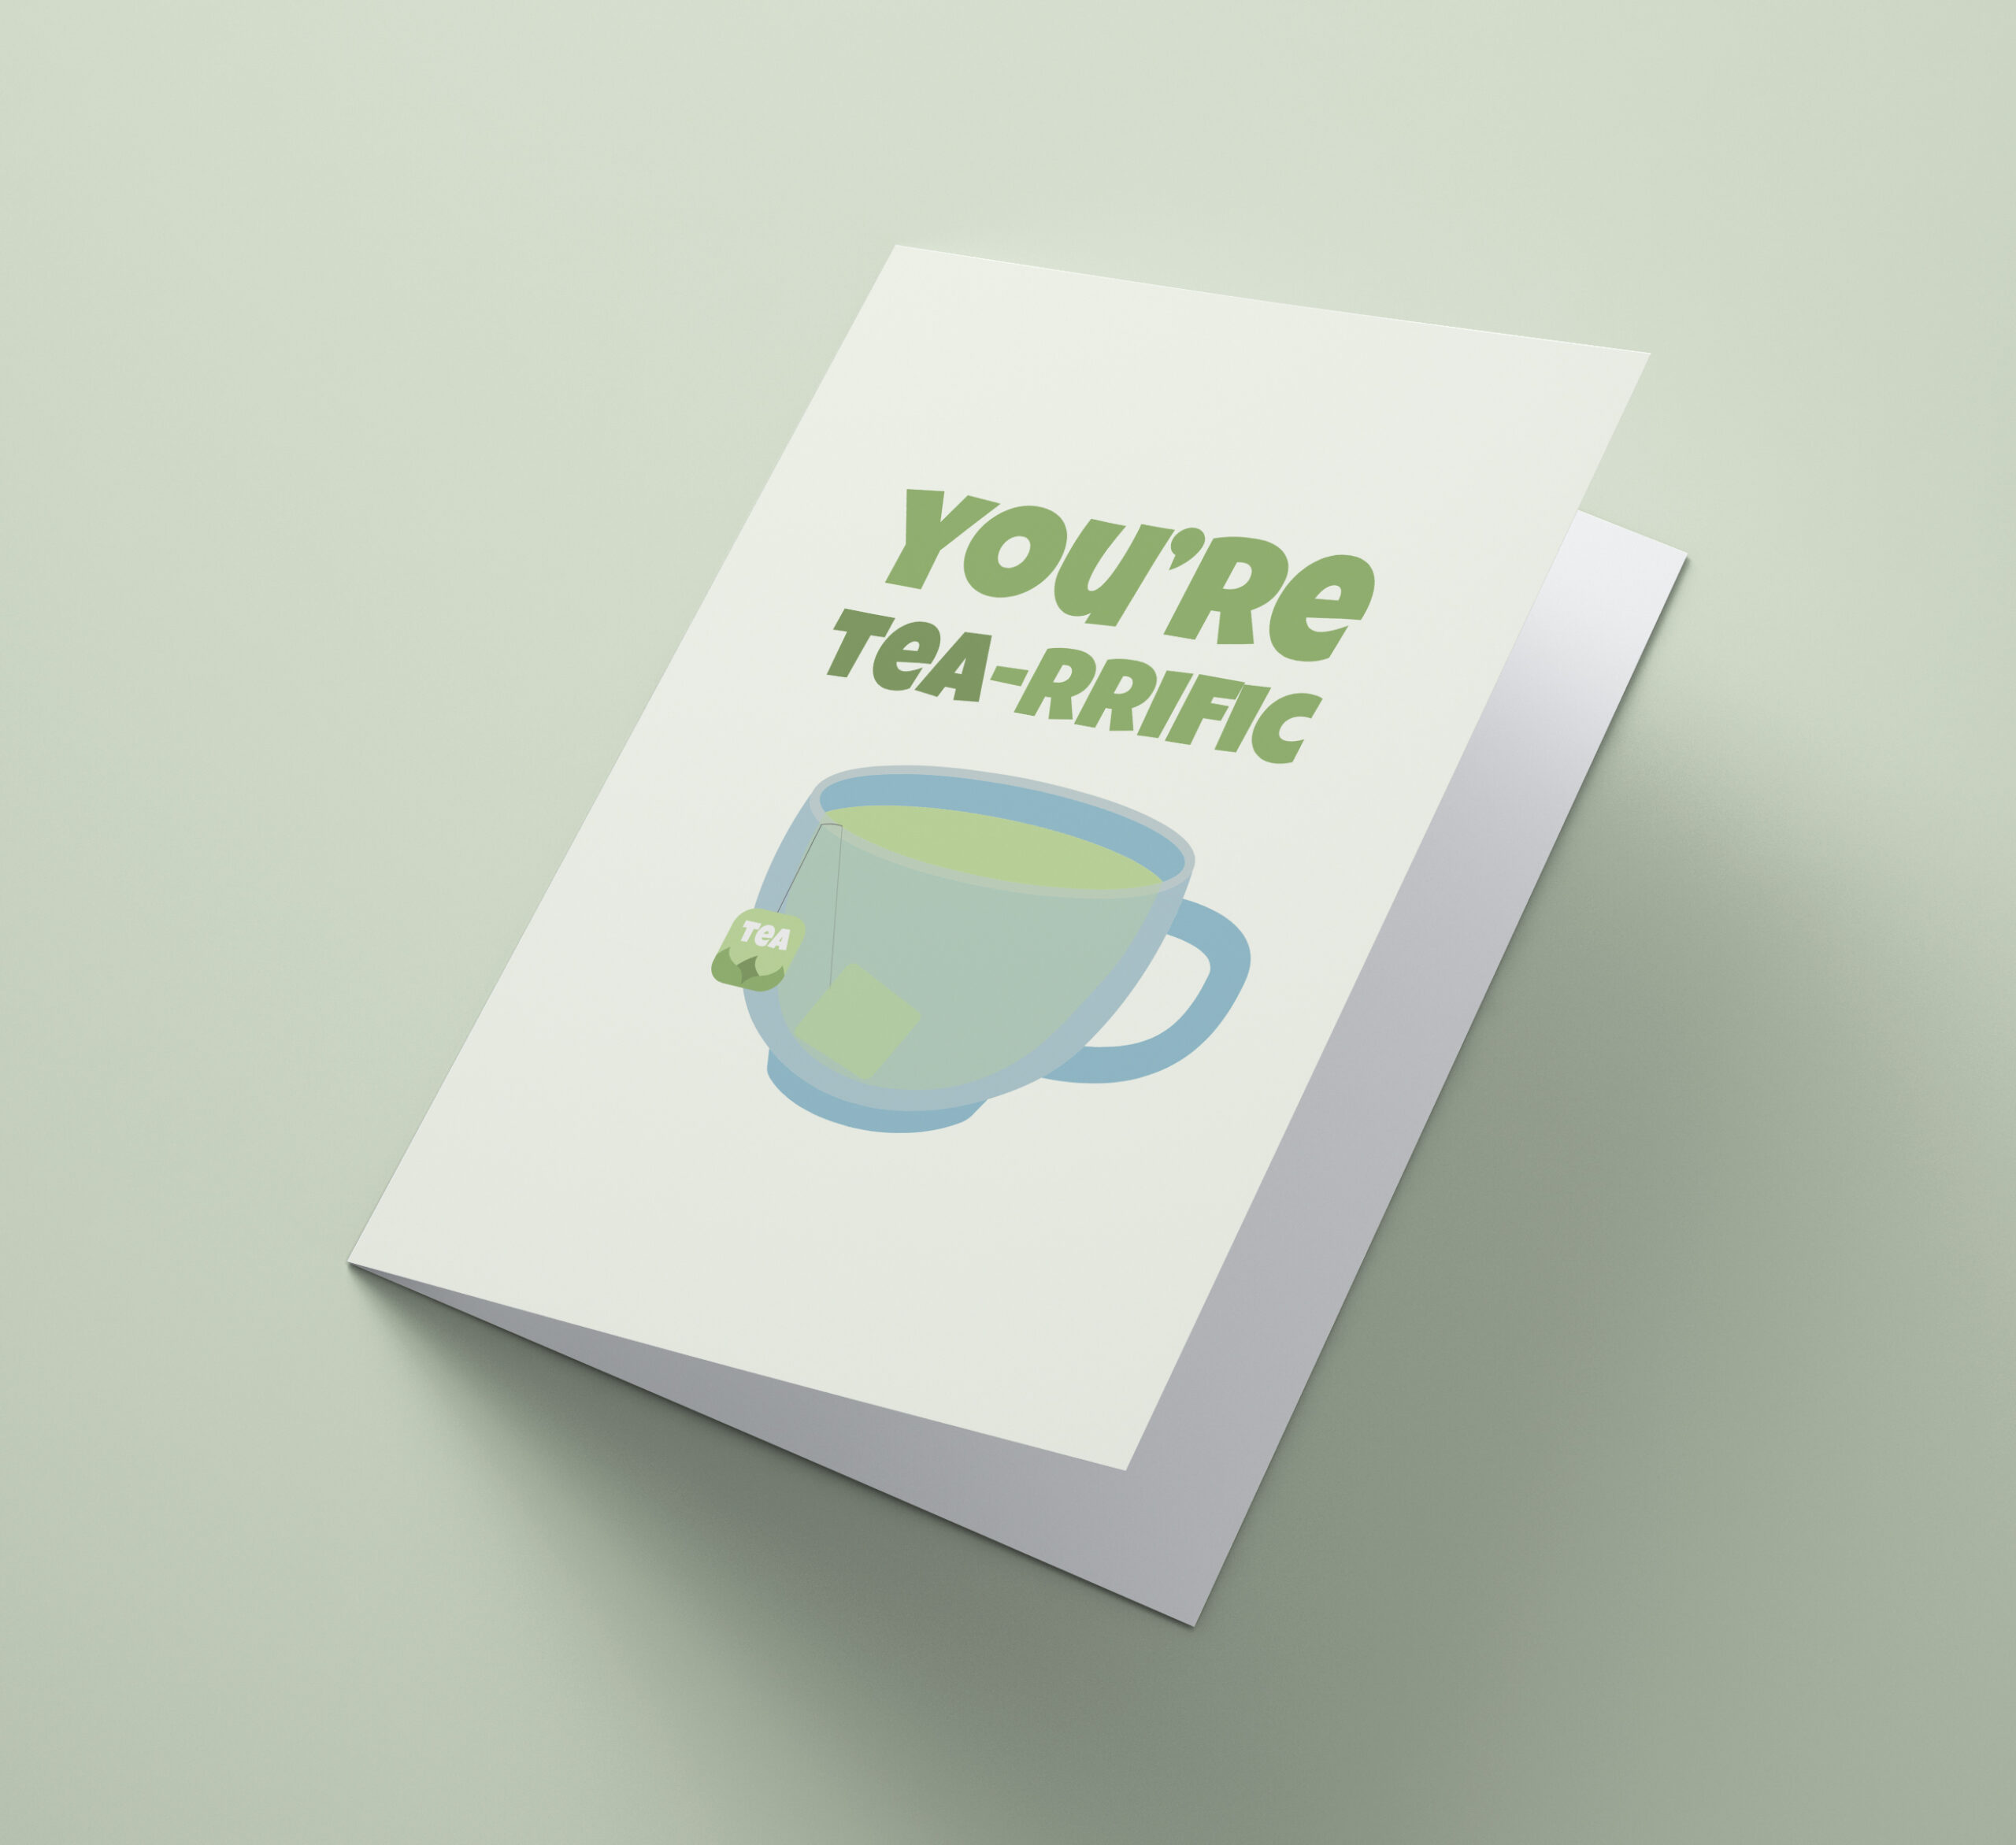 You're Tea-rrific